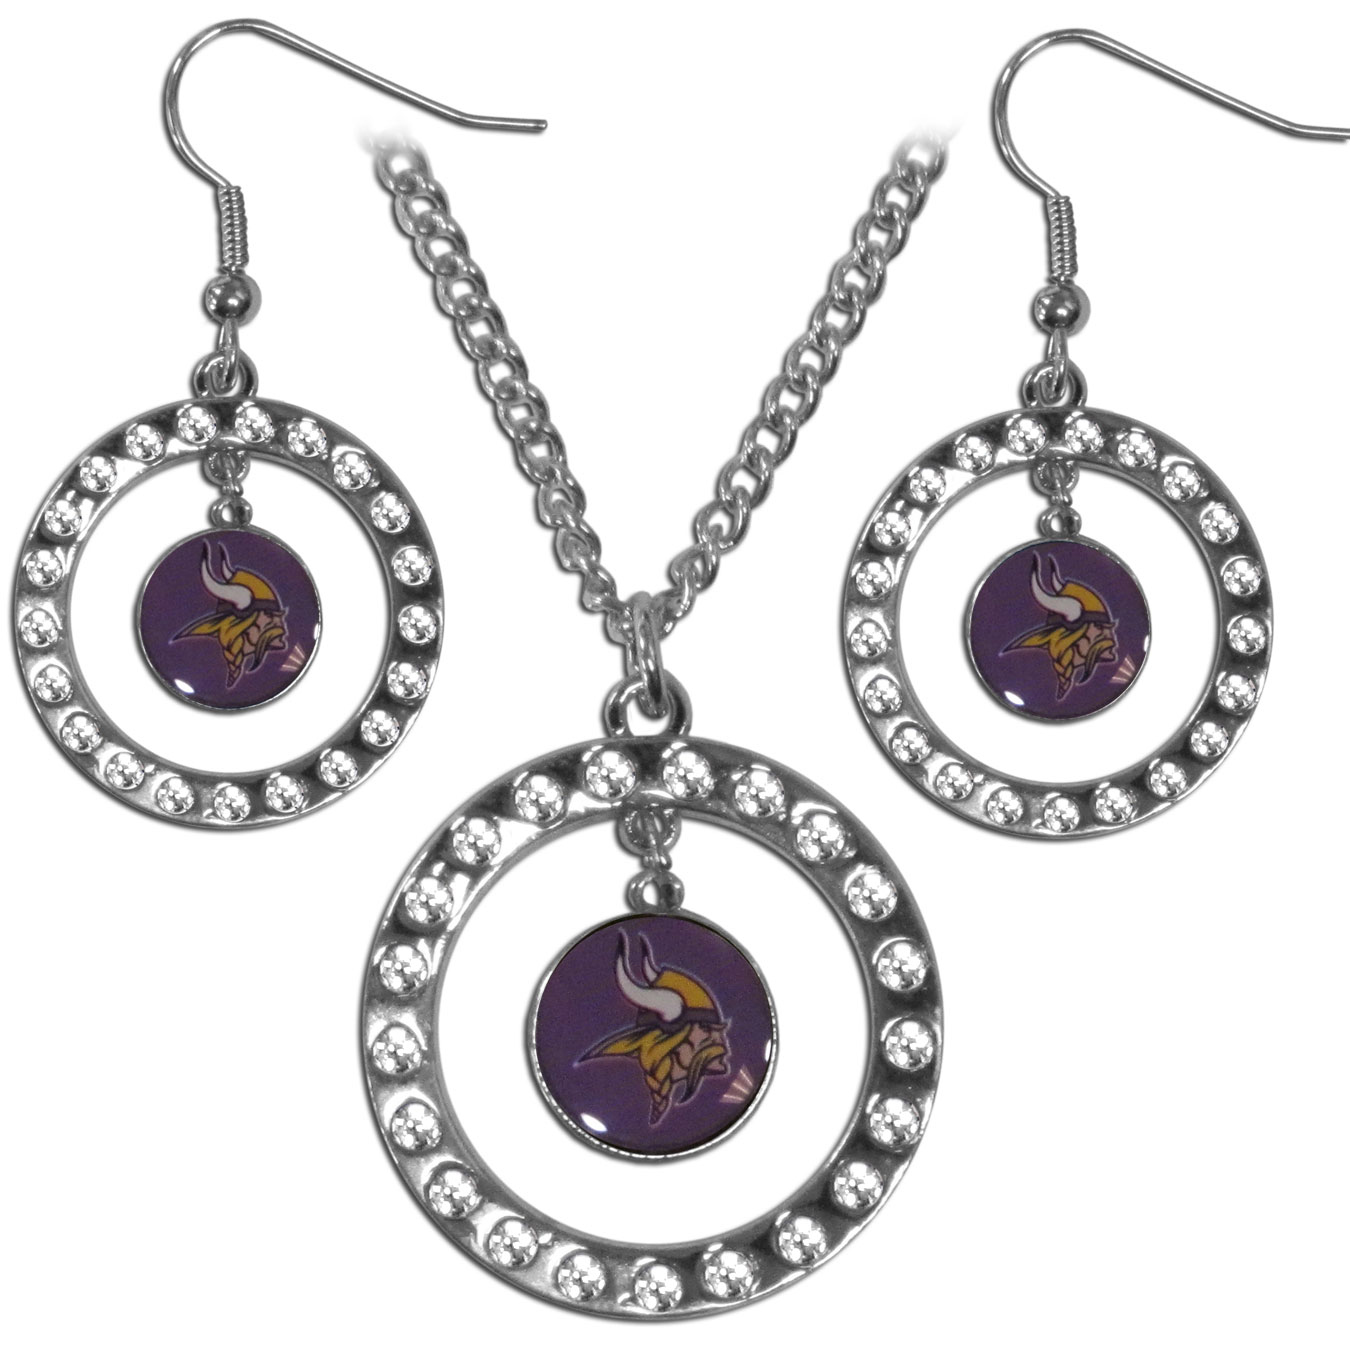 Minnesota Vikings Rhinestone Hoop Jewelry Set - This officially licensed Minnesota Vikings jewelry set includes our rhinestone hoop earrings and pendant in a gift box. The 1 inch rhinestone hoop pendant comes on an 18 inch chain and is paired with the matching dangle hoop earrings.